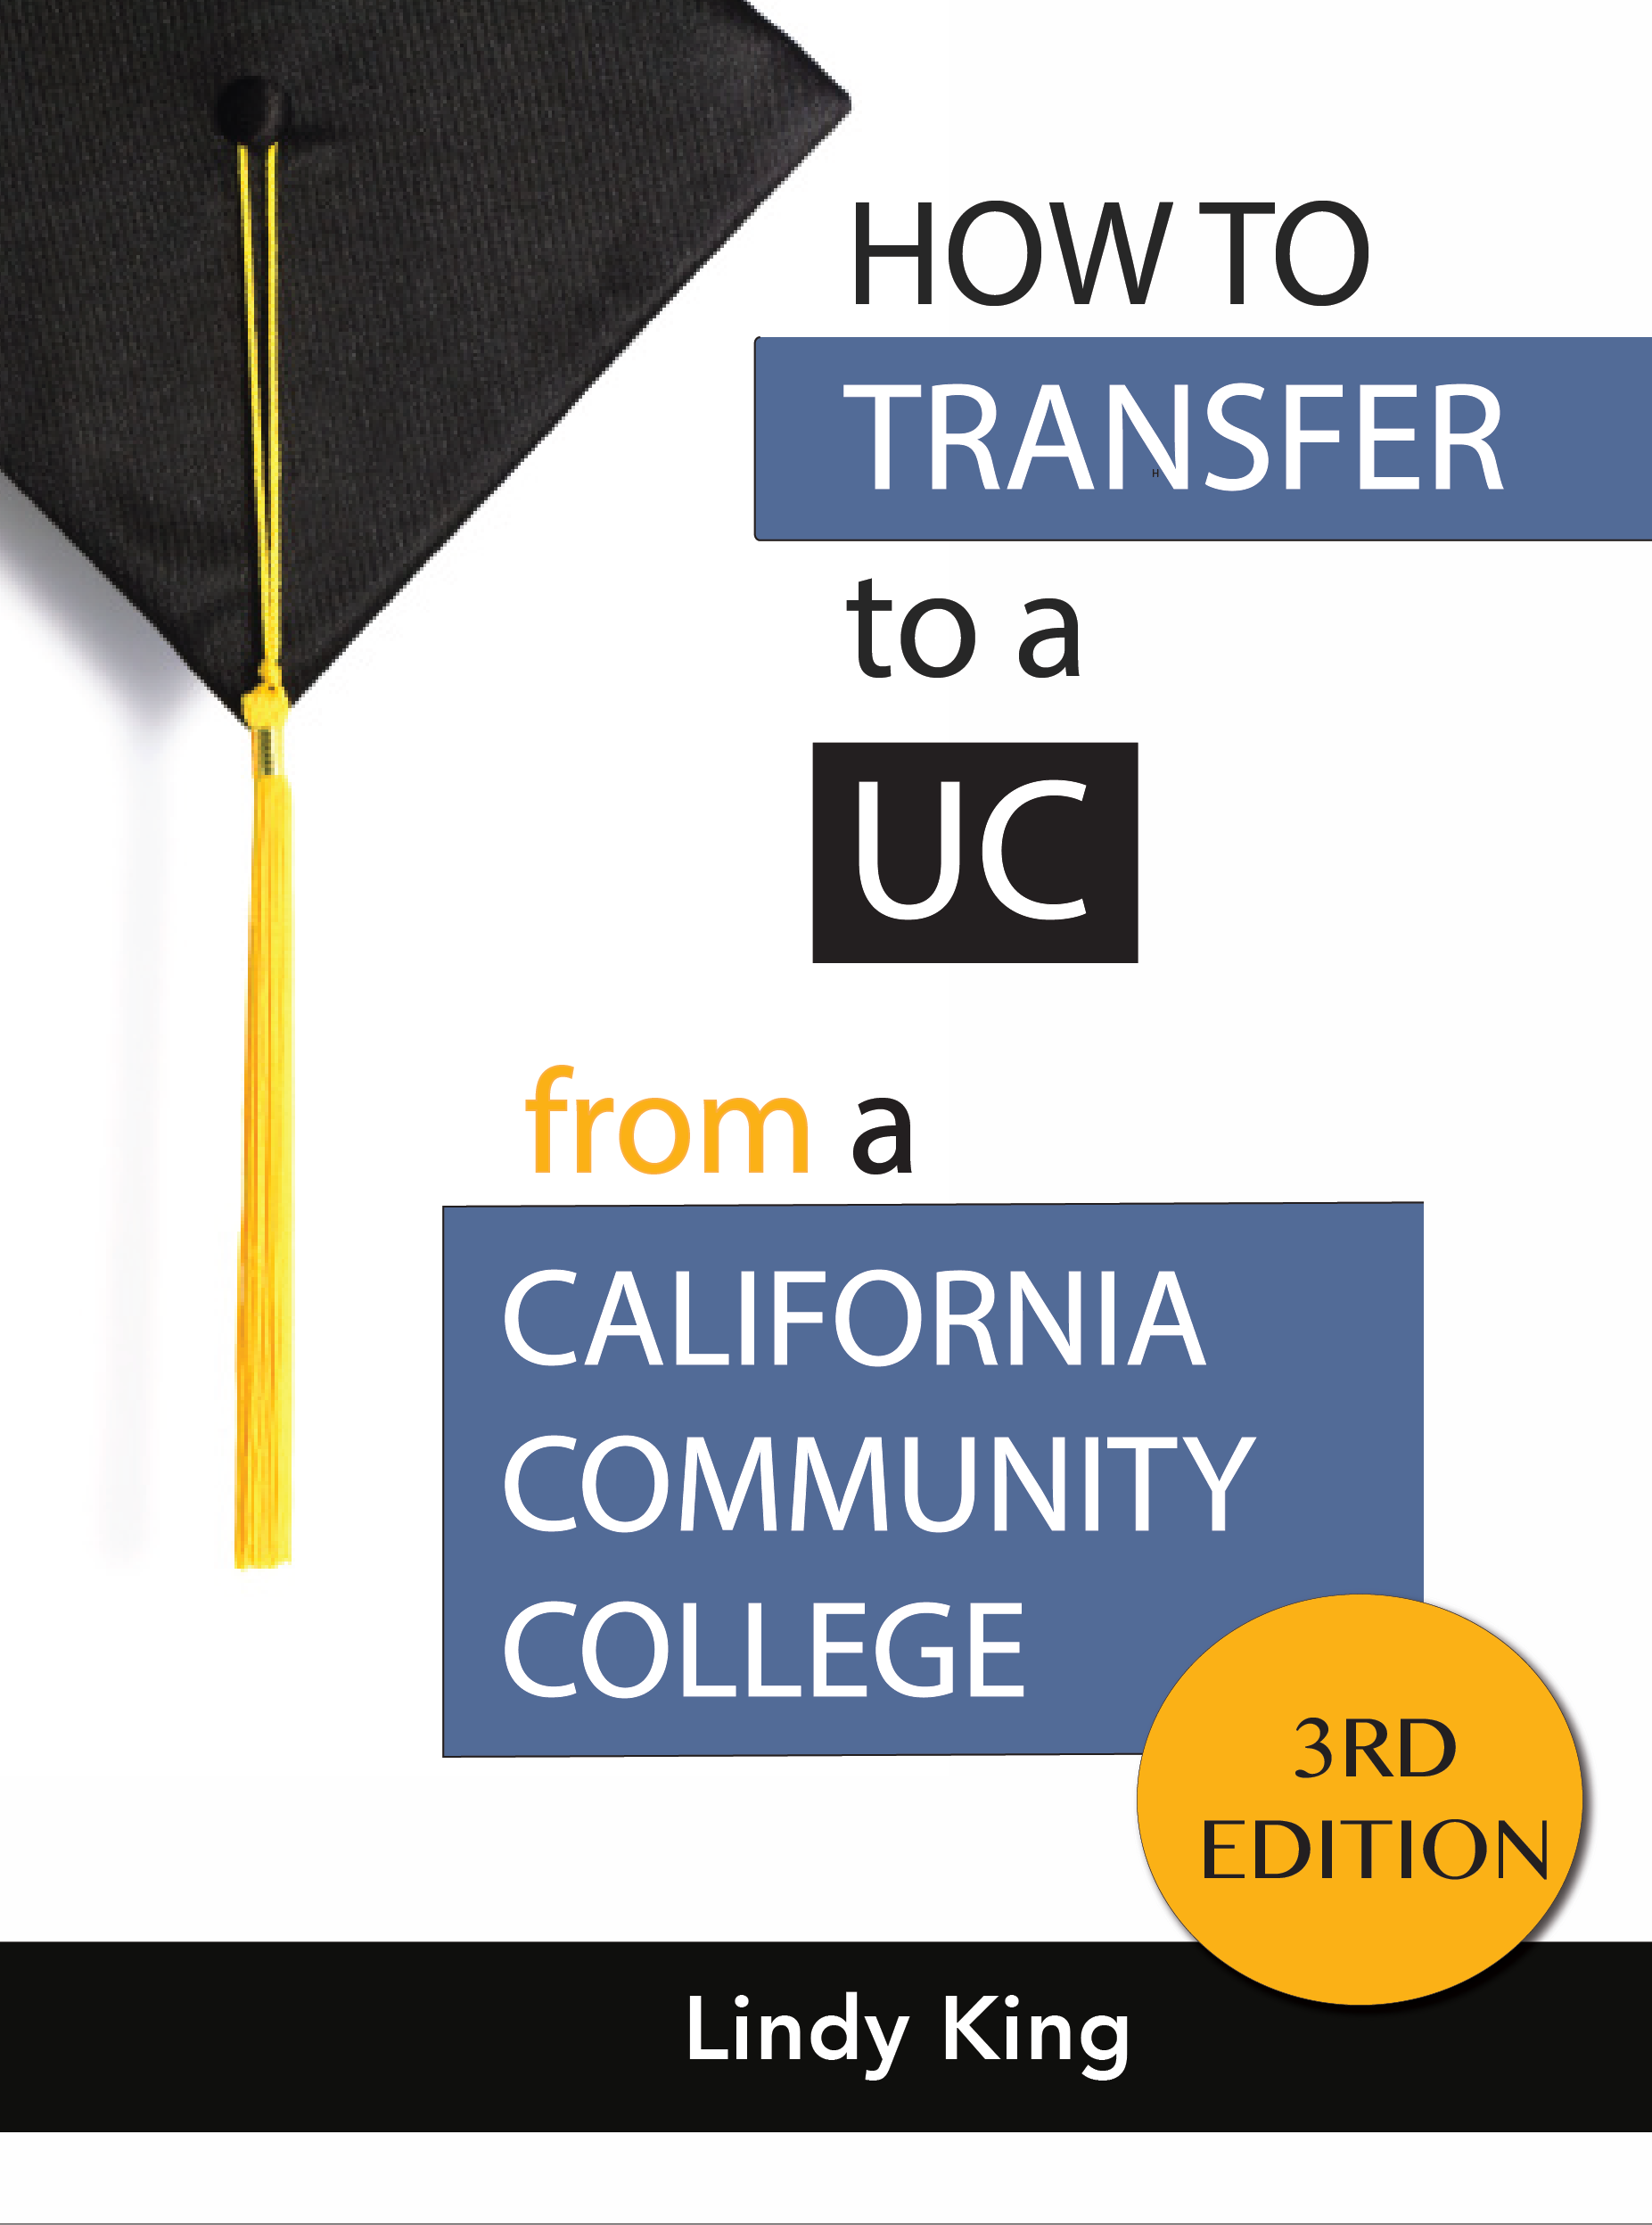 How to Transfer to a UC, 3rd edition